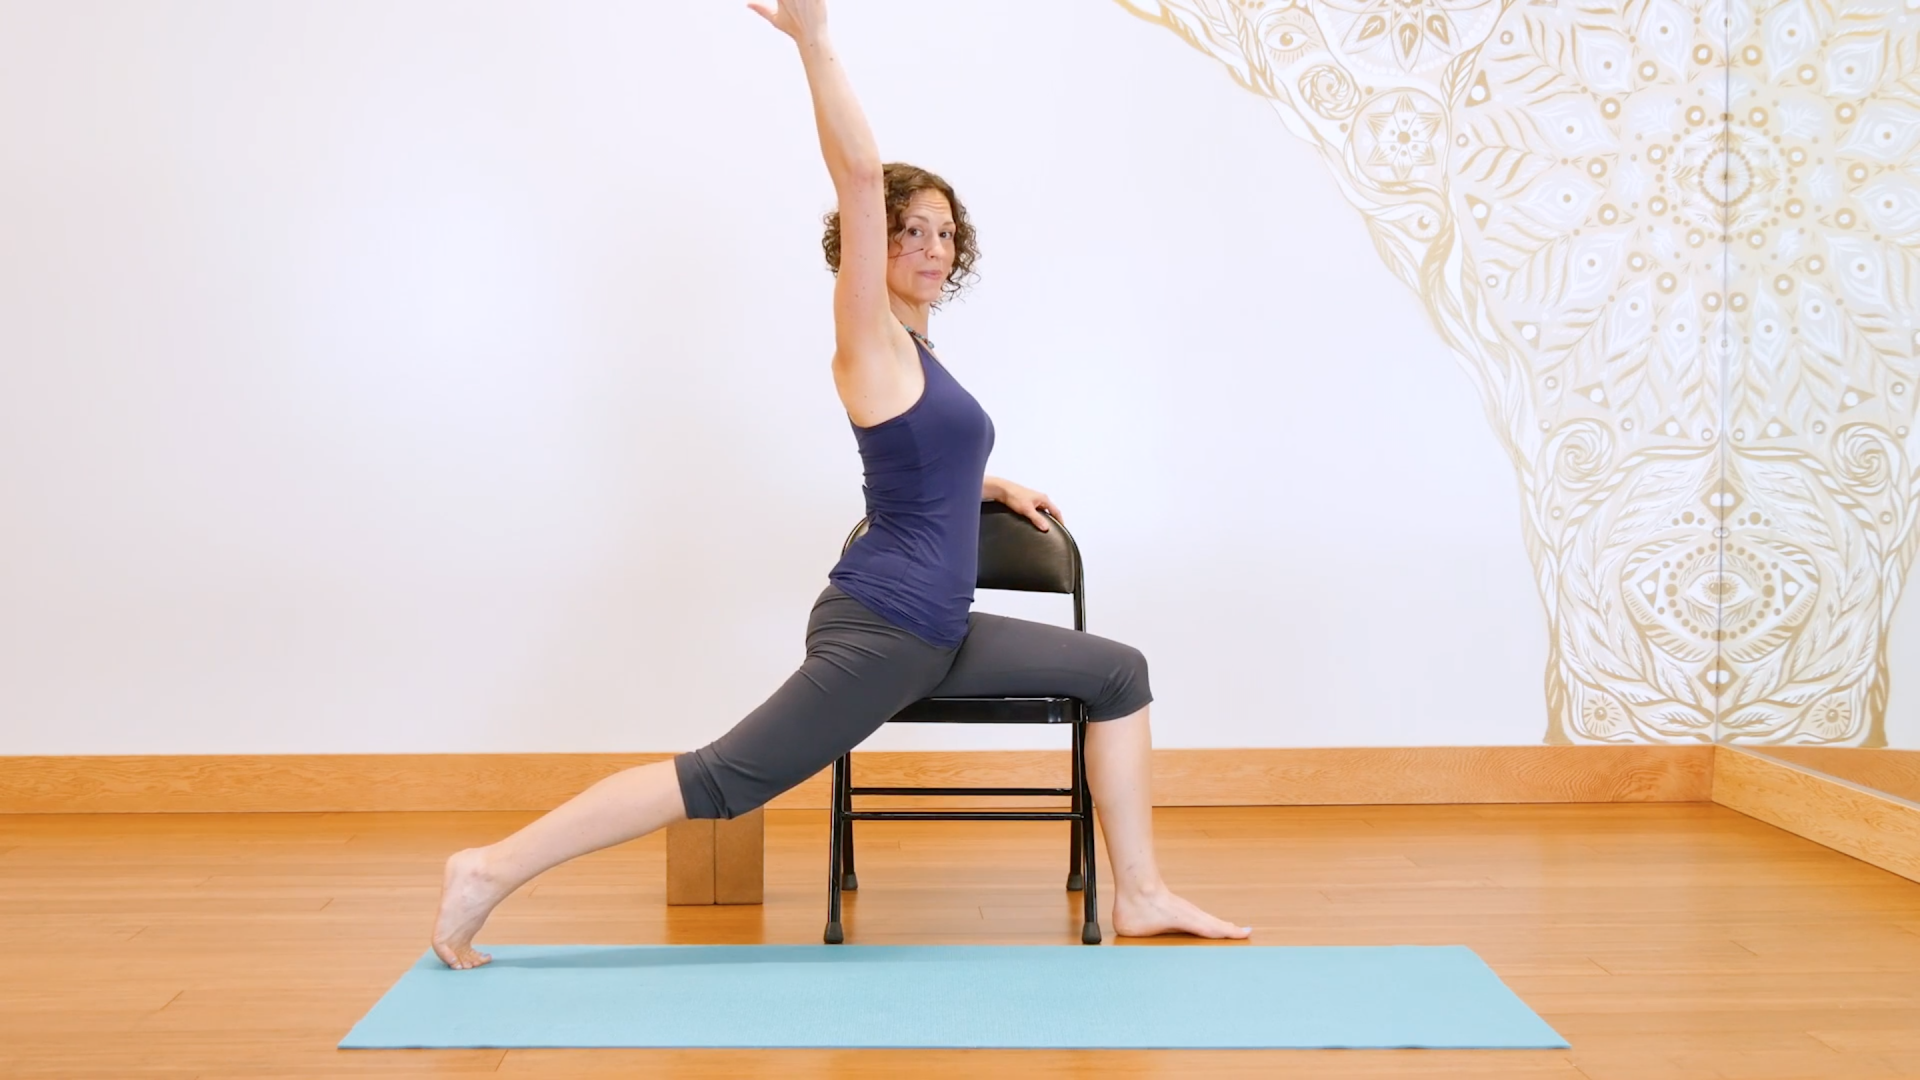 Discover the benefits that chair yoga can provide even the